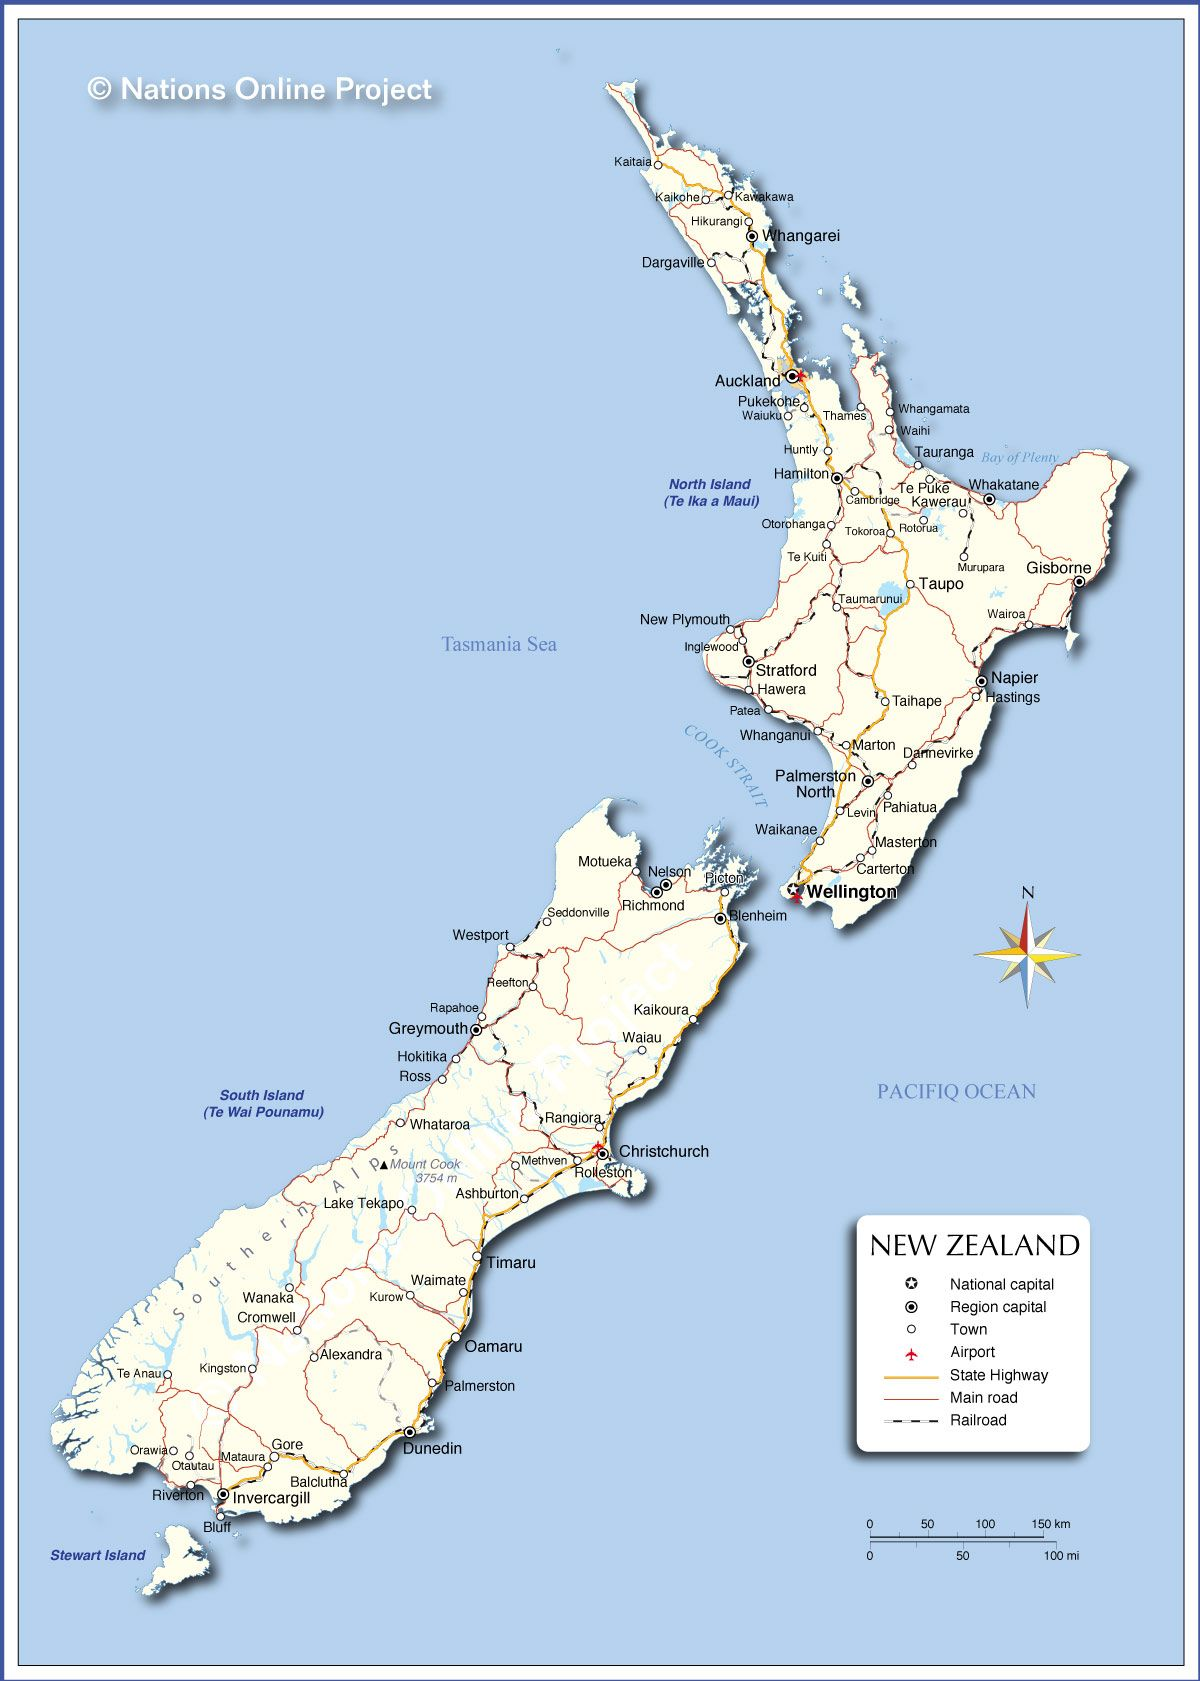 New Zealand On The Map.Political Map Of New Zealand New Zealand In 2019 Map Of New